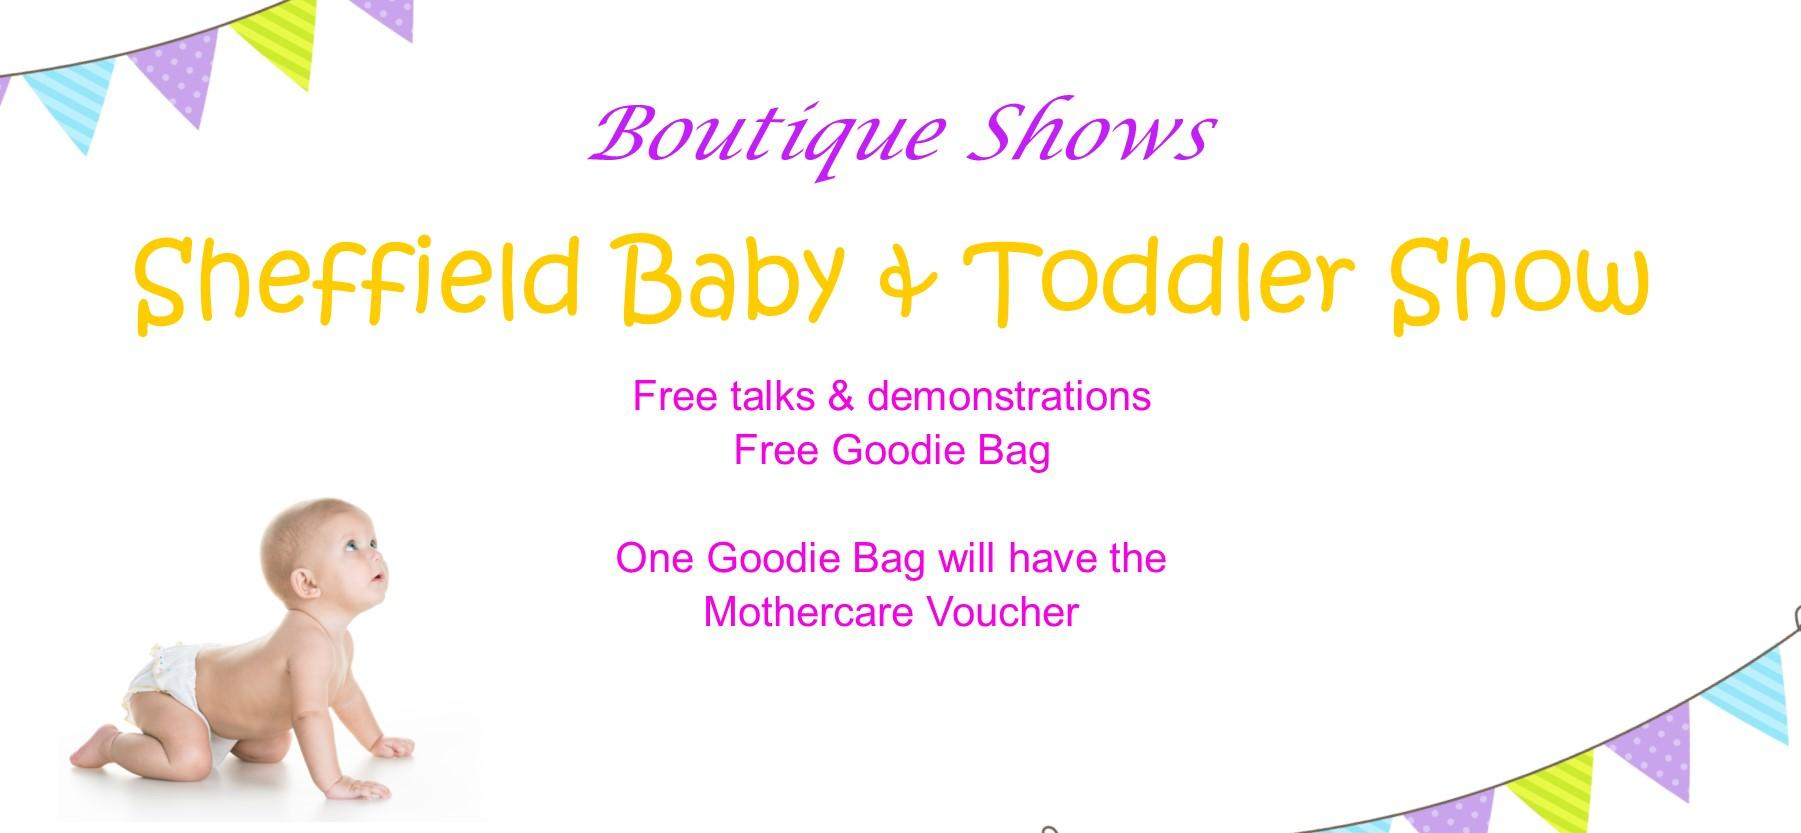 Sheffield Baby & Toddler Show